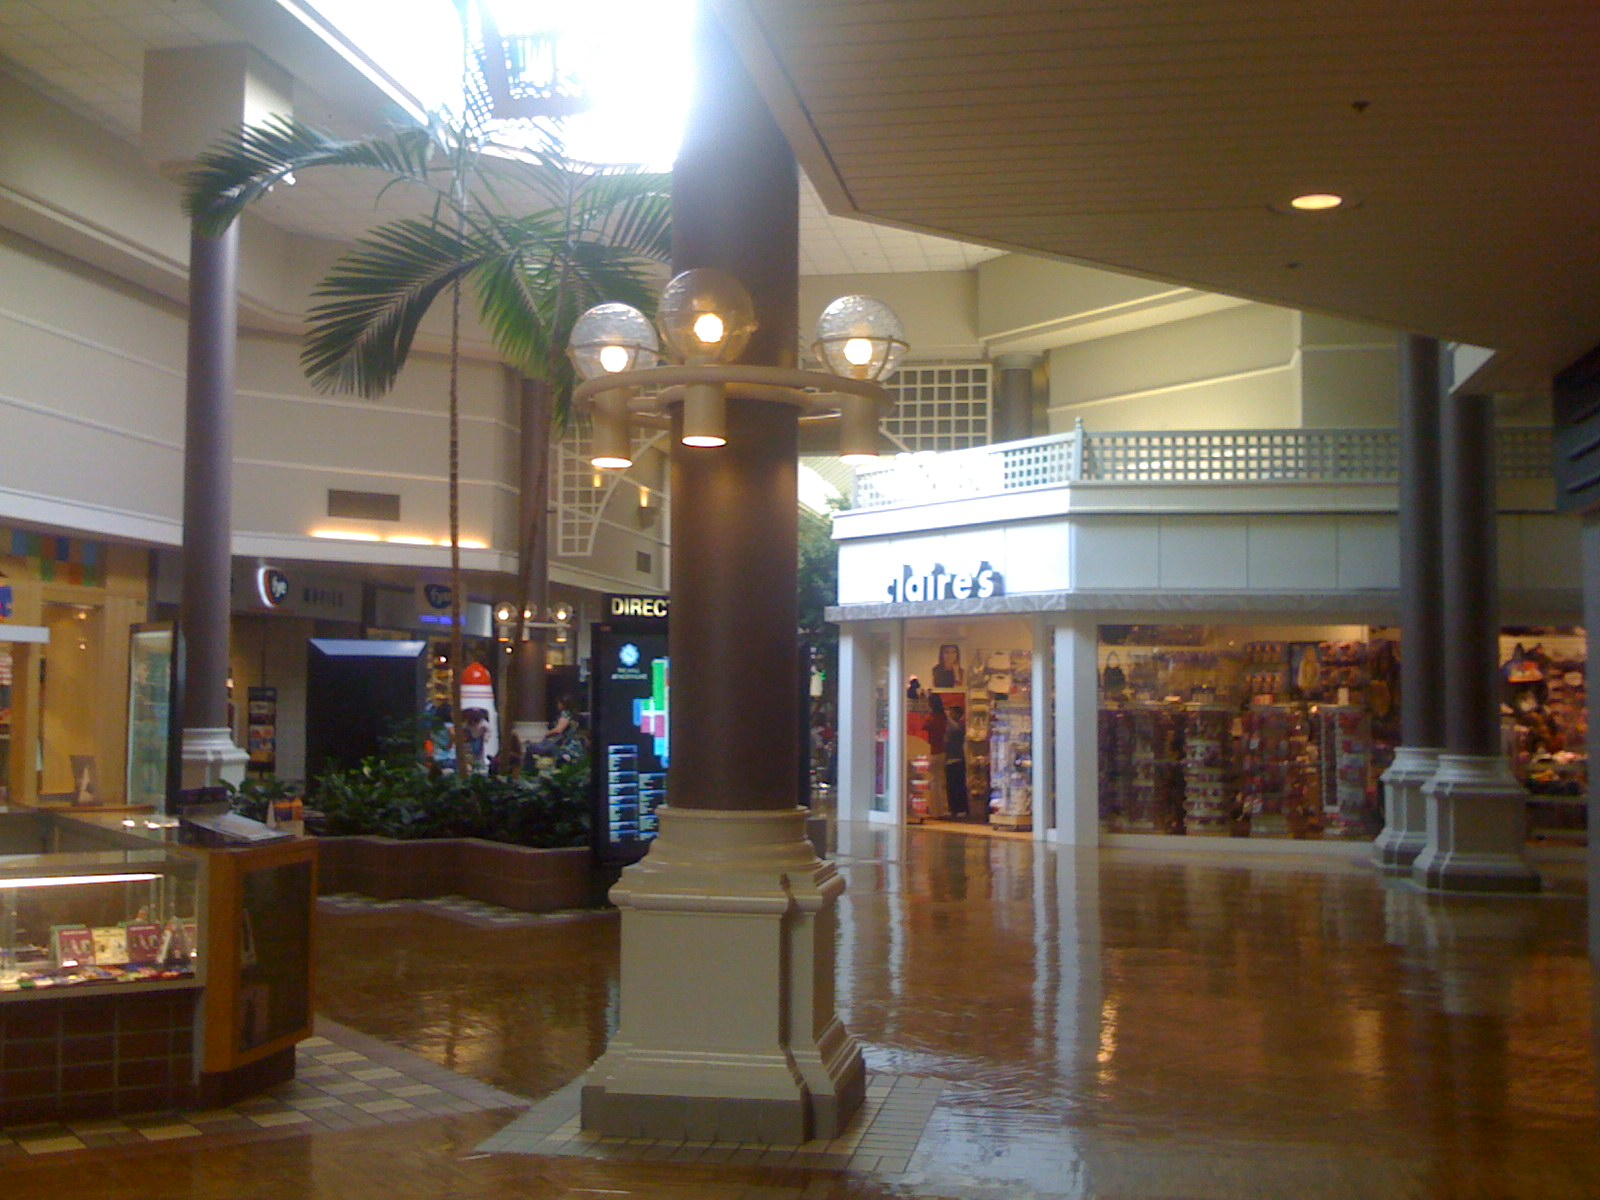 The Mall at Northgate was recently remodeled and now features several new merchants and a slightly different configuration. The four anchor stores are Macy's, Sears, Kohl's and Rite Aid. Not all of the stores hold to the mall's operating hours, so inquire individually about store shopnow-vjpmehag.cfon: San Rafael, CA.